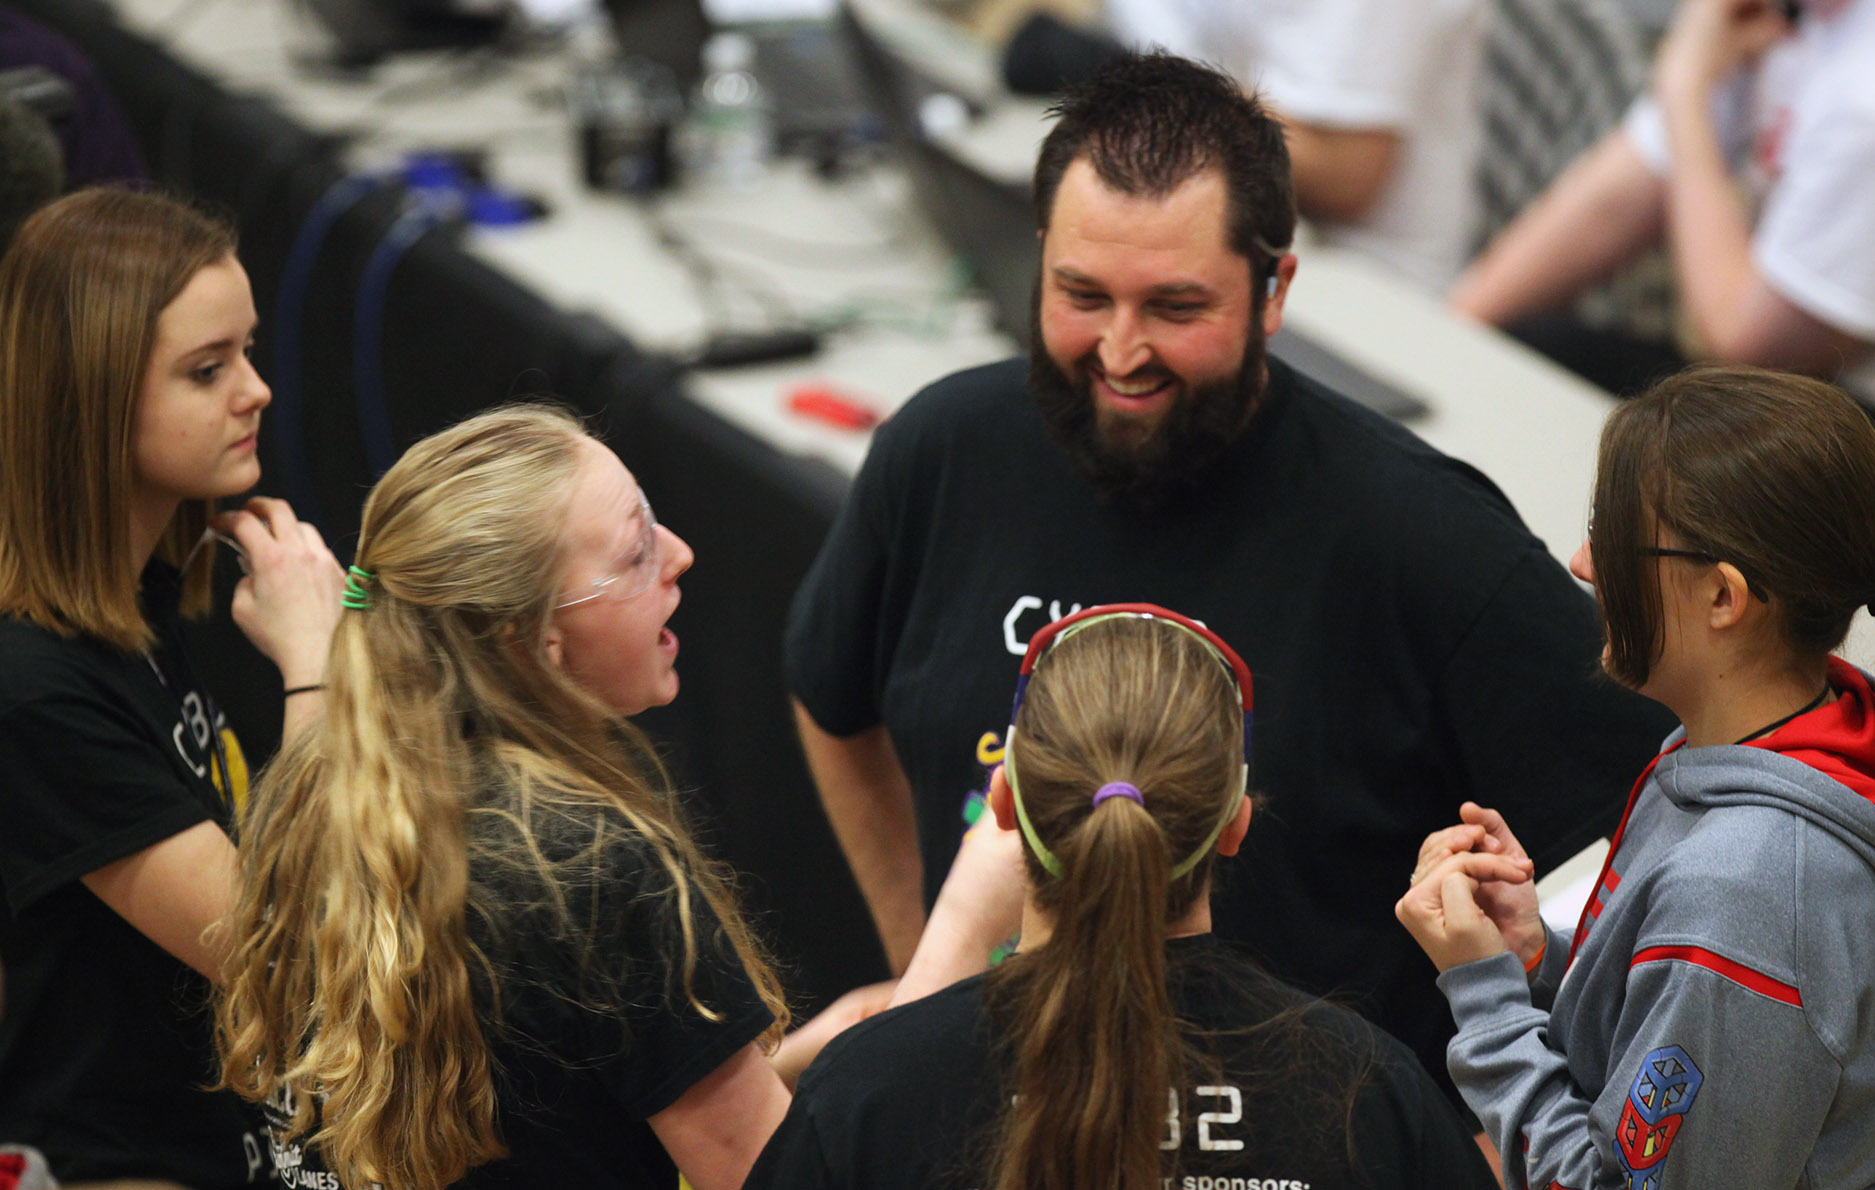 From left, Hannah Engler, 15, Kaitlyn De Kan, 17, Allie Floyd, 18, and Shannon Coupland, 17, talk with their coach, Adam Arnold, during the VEX Missouri State Robotics Championship in Rolla on Saturday. The team won three awards based on their performance throughout the day.